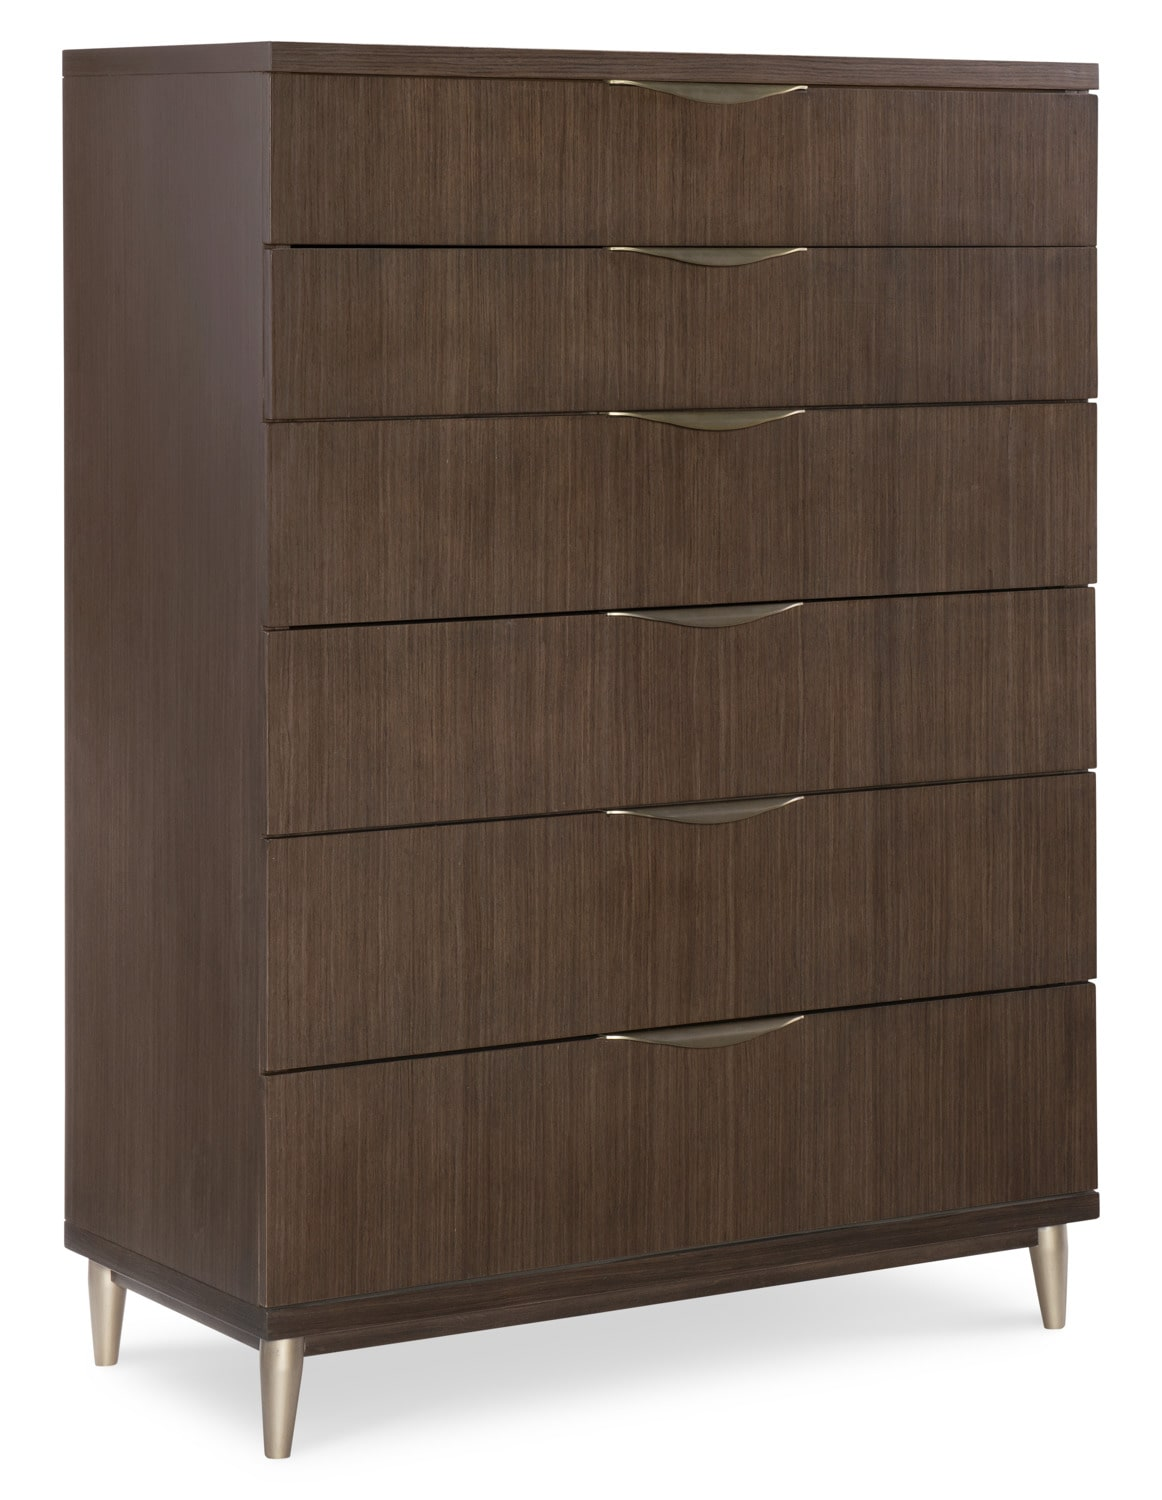 Rachael Ray Soho 6-Drawer Chest - Ash Brown